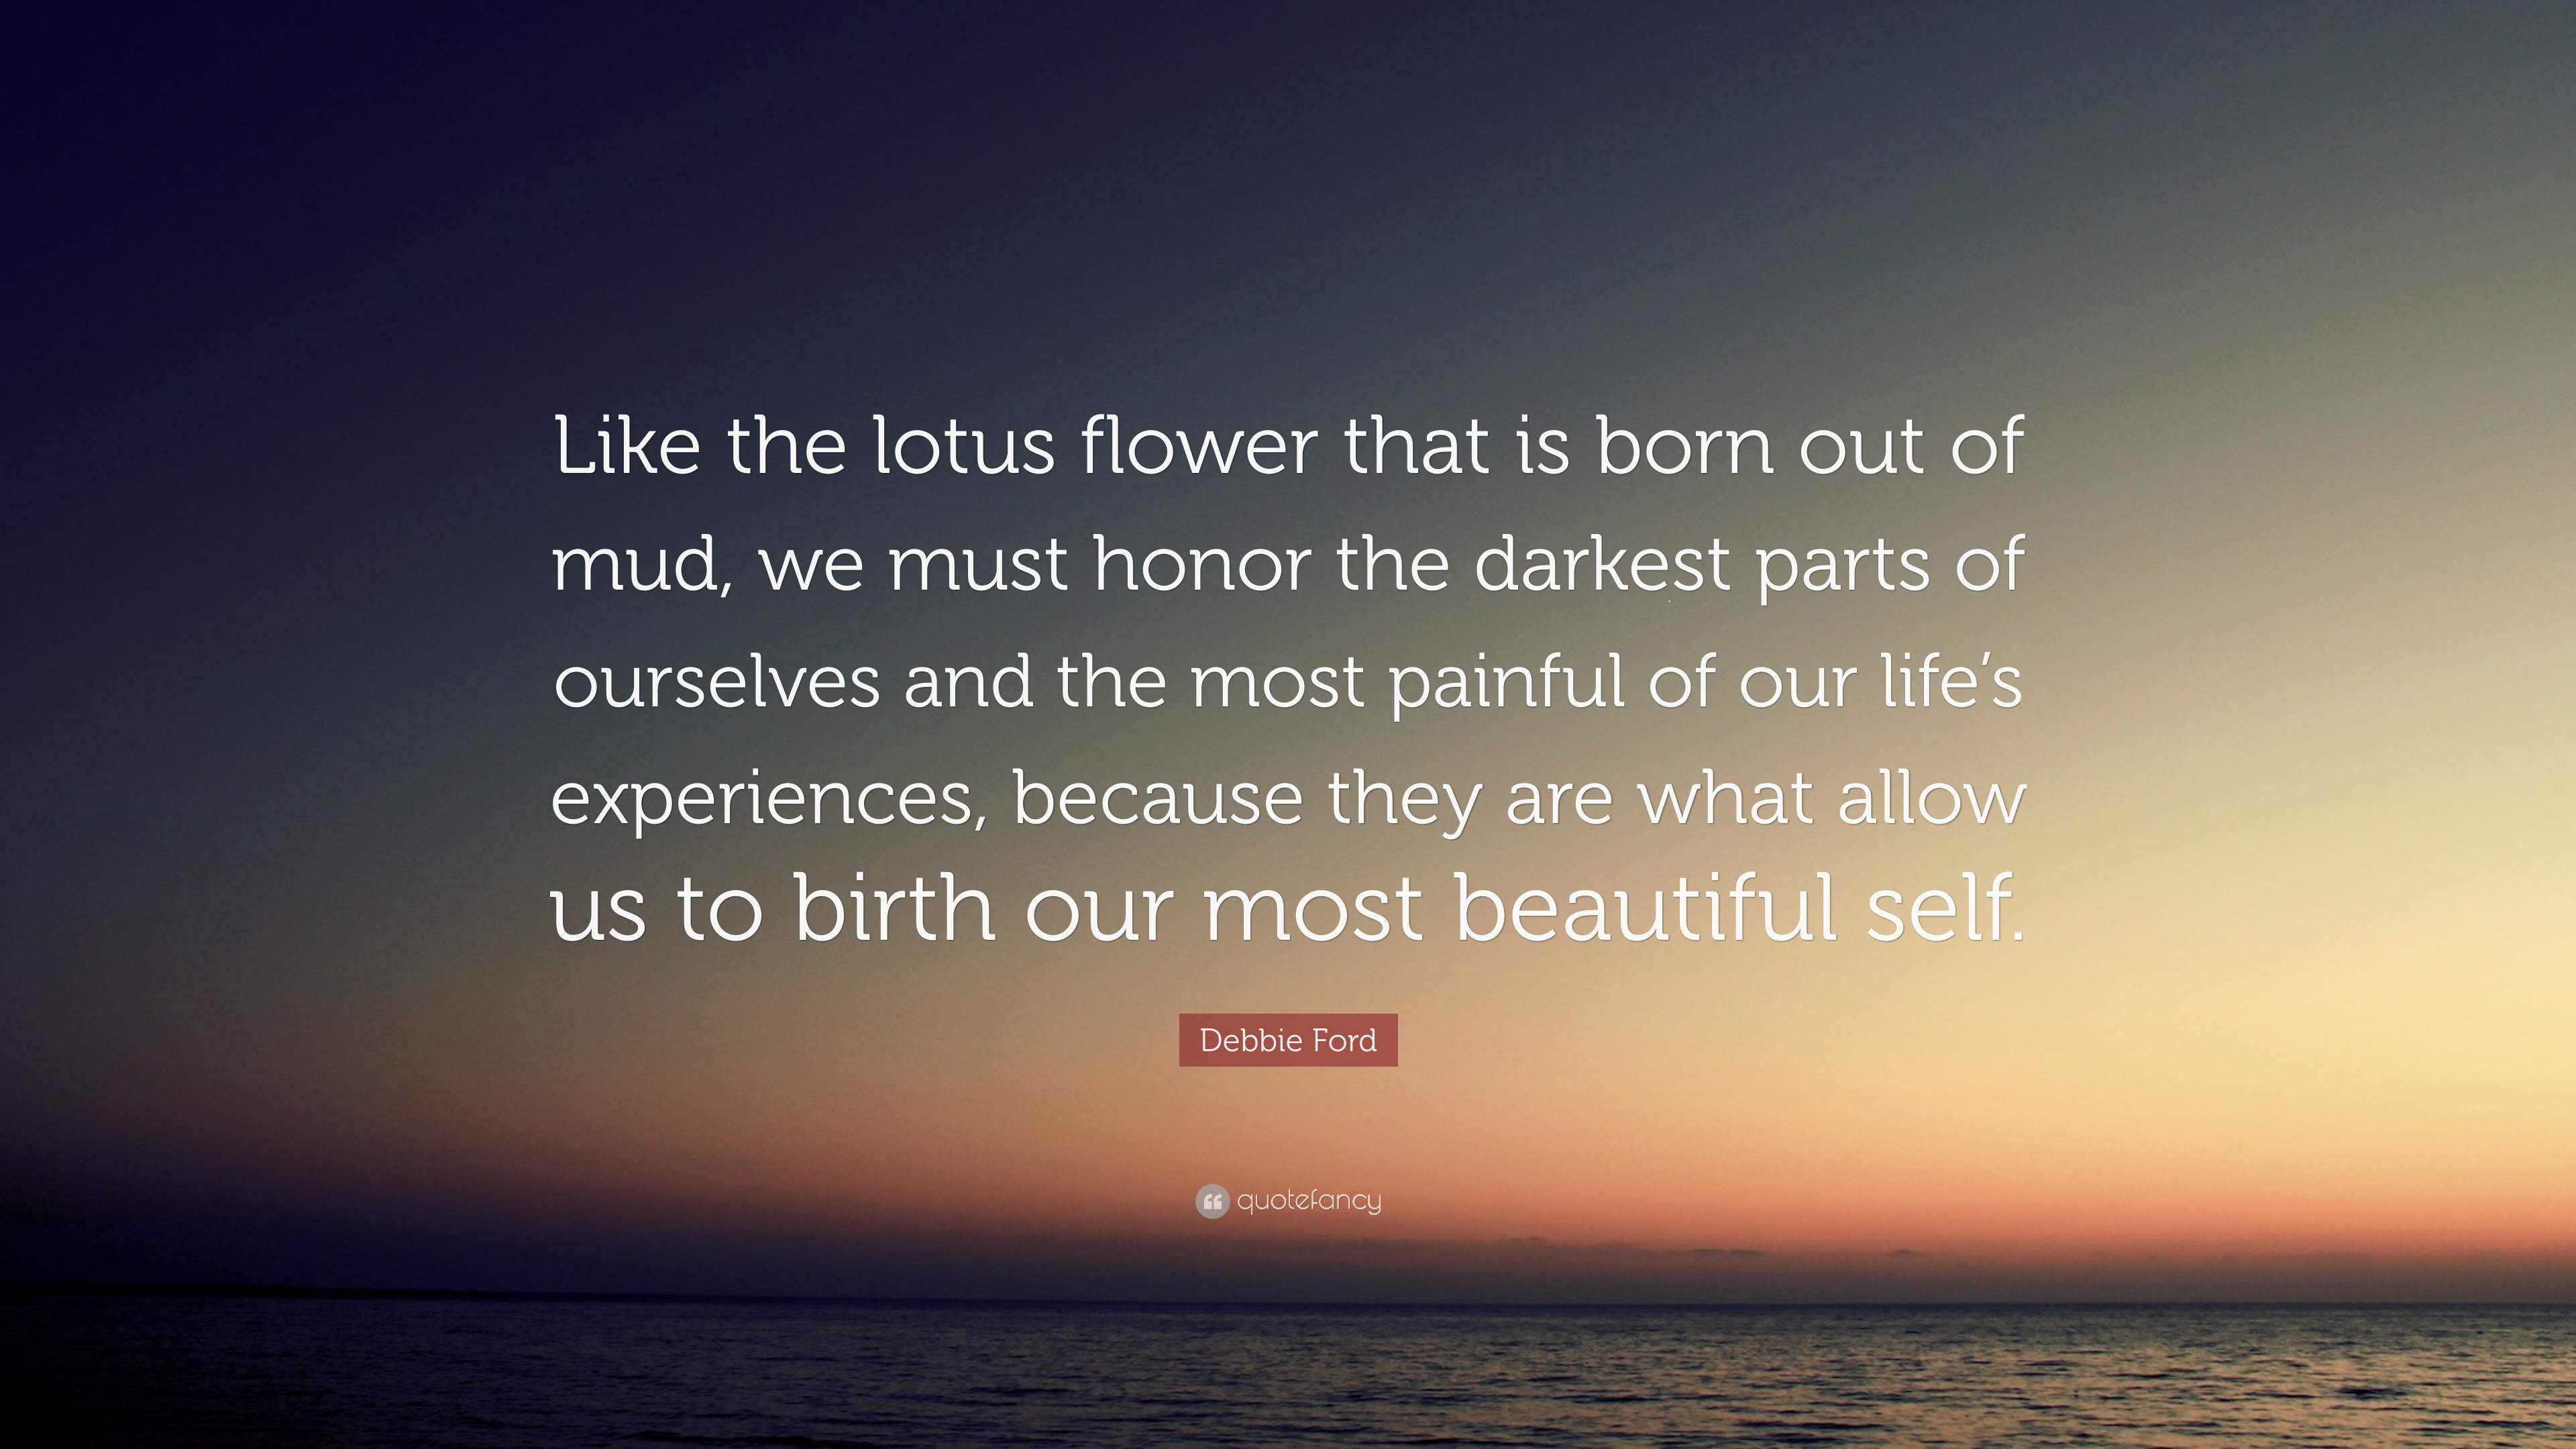 Debbie ford quote like the lotus flower that is born out of mud debbie ford quote like the lotus flower that is born out of mud mightylinksfo